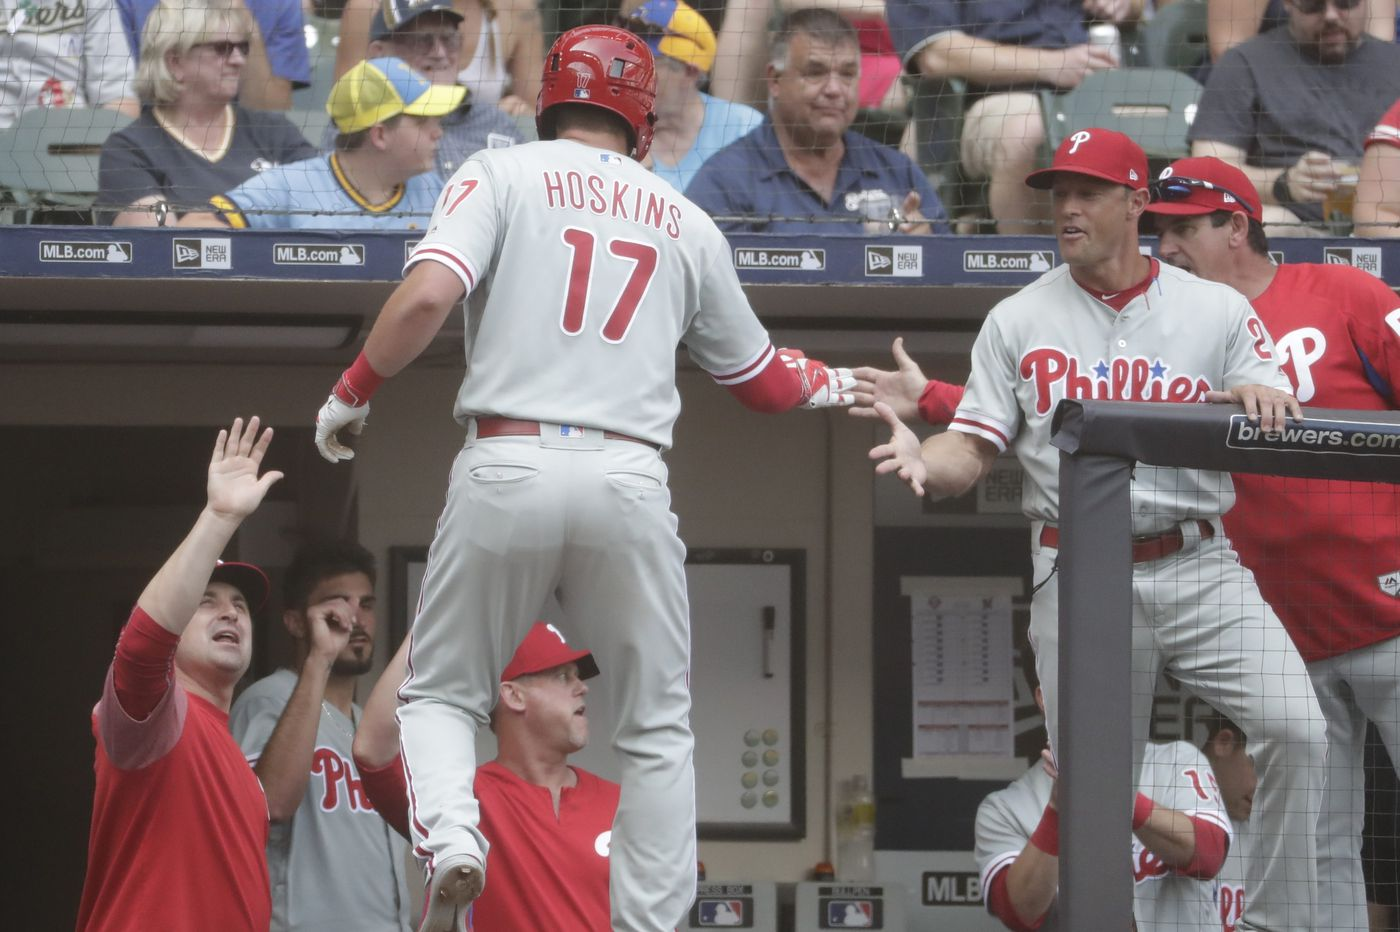 Phillies beat Brewers as Gabe Kapler's gamble to pinch-hit Maikel Franco, pull Zach Eflin pays off